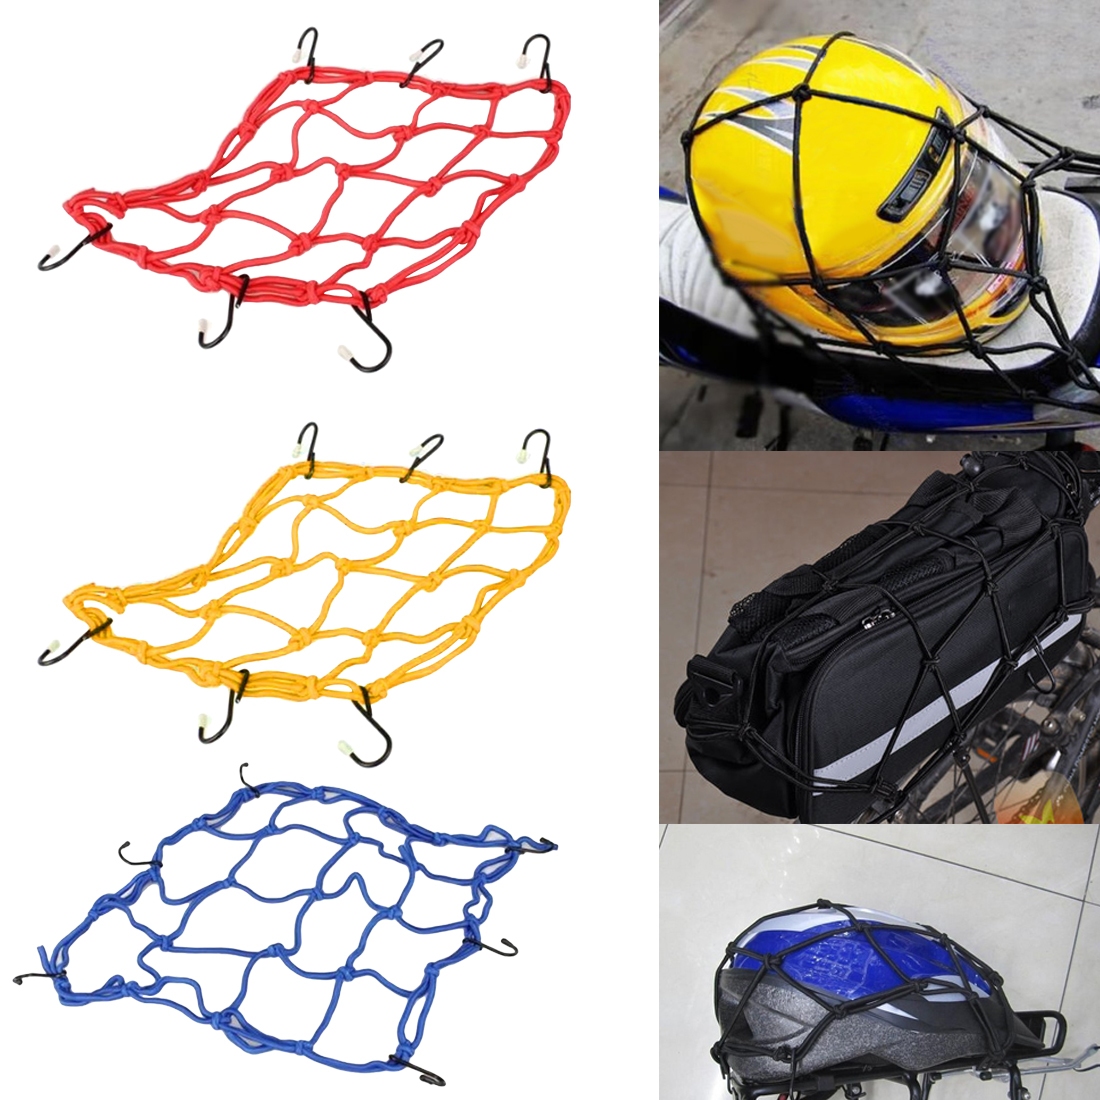 Helmet Nets Mountains Bike Rear Frame Cover Rubber Elastic Luggage Net Brandnew